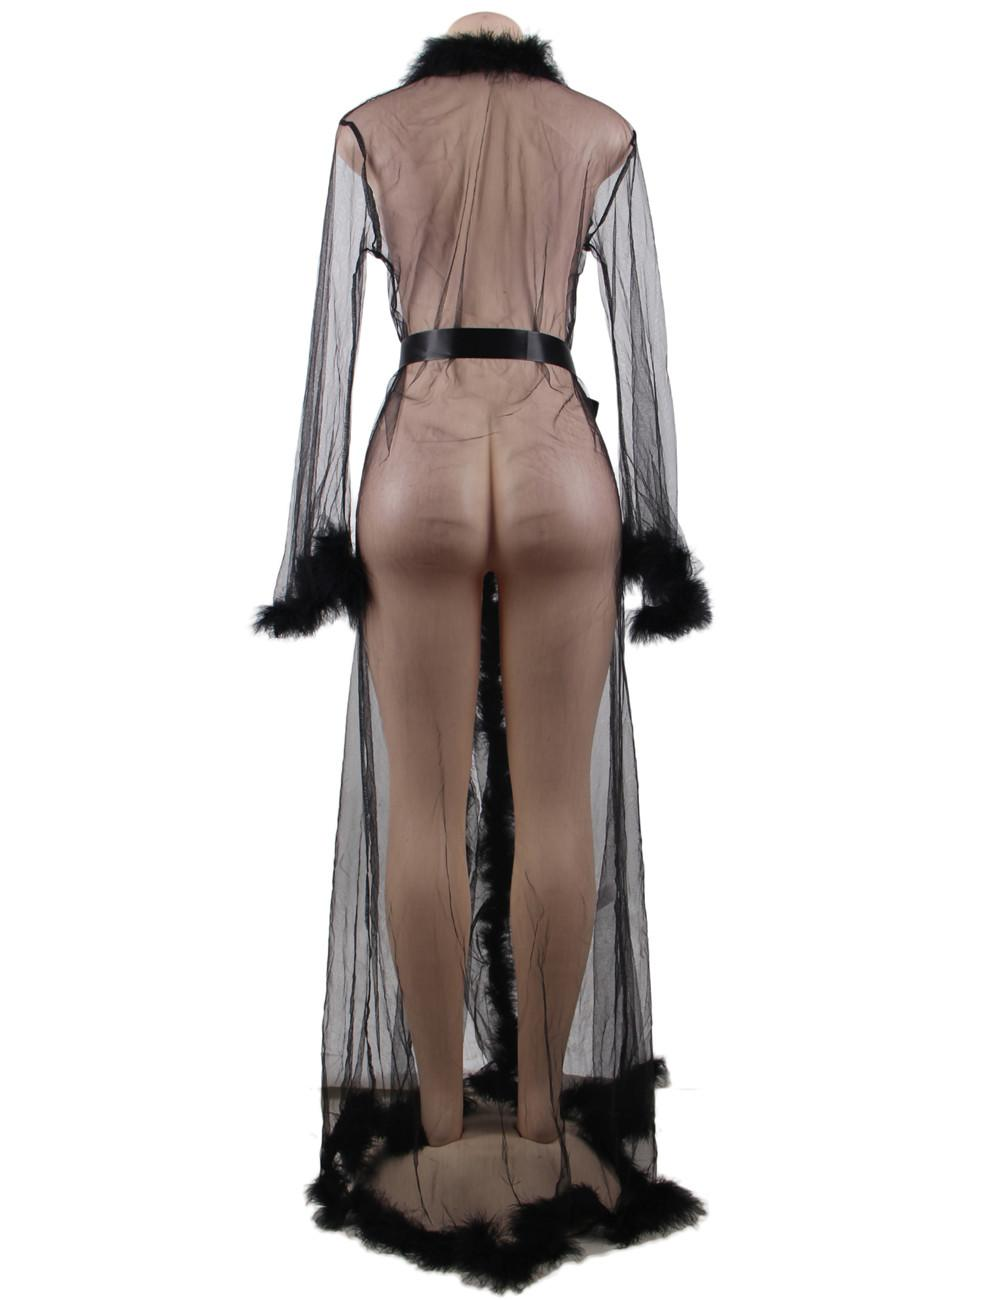 Black Fur Trimmed Long Robe rear view